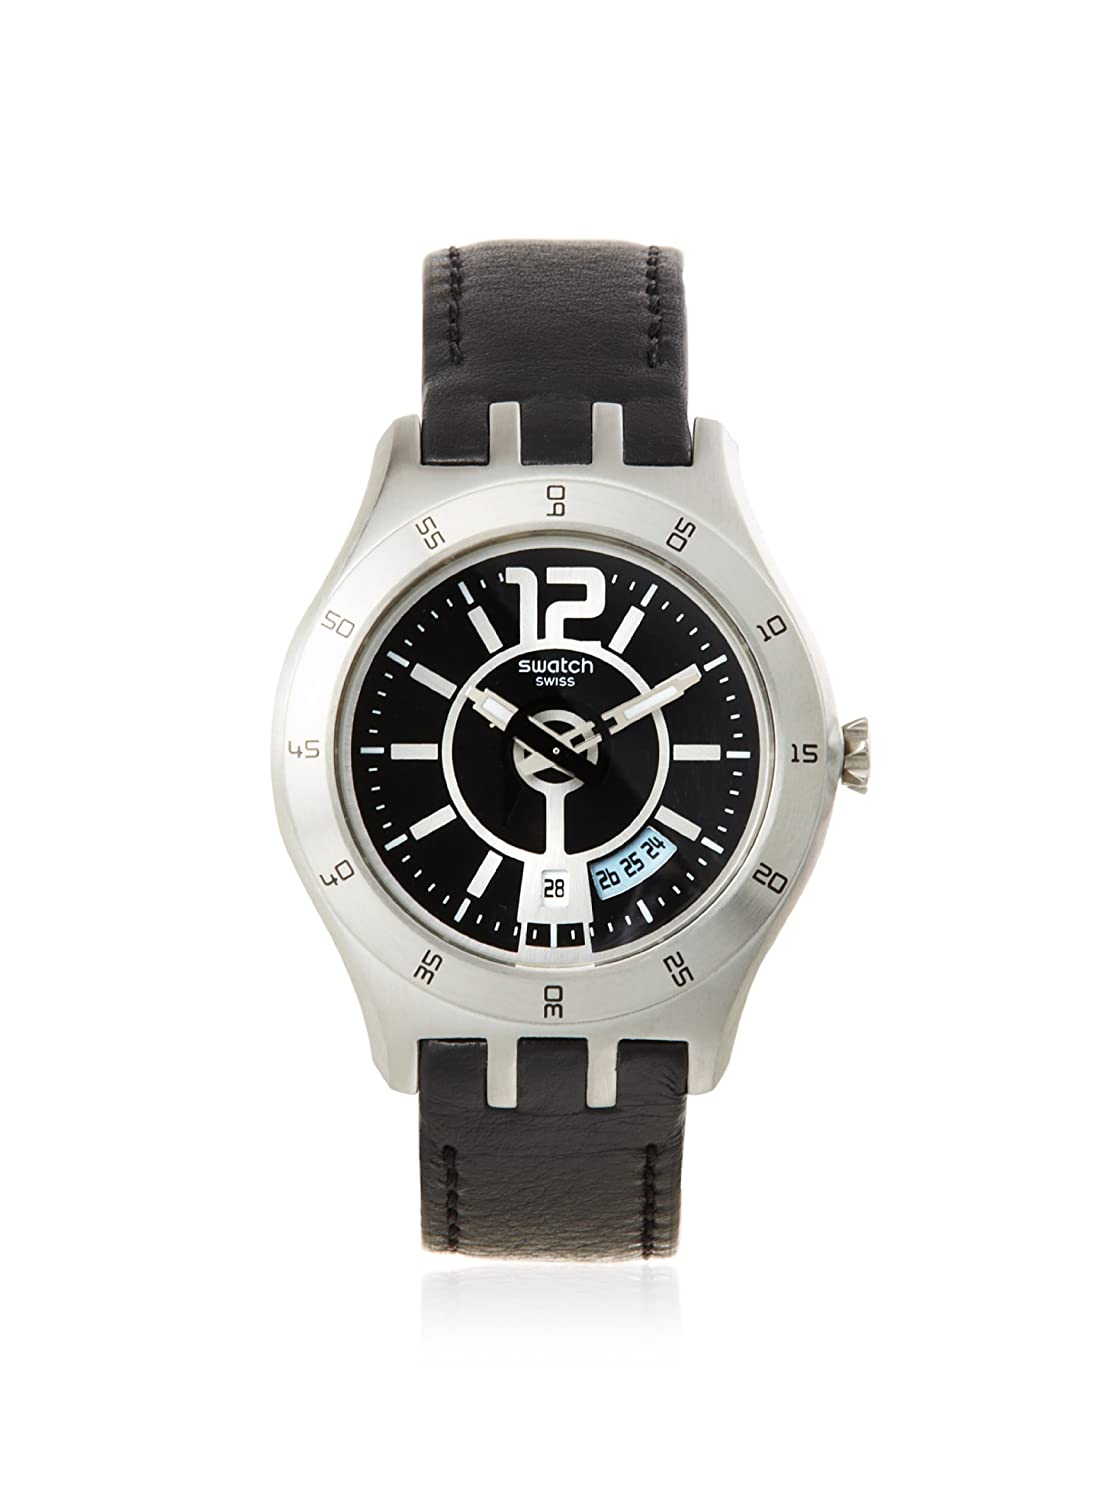 053af05a7221 Amazon.com  Swatch Men s YTS400 Black Leather Watch  Watches